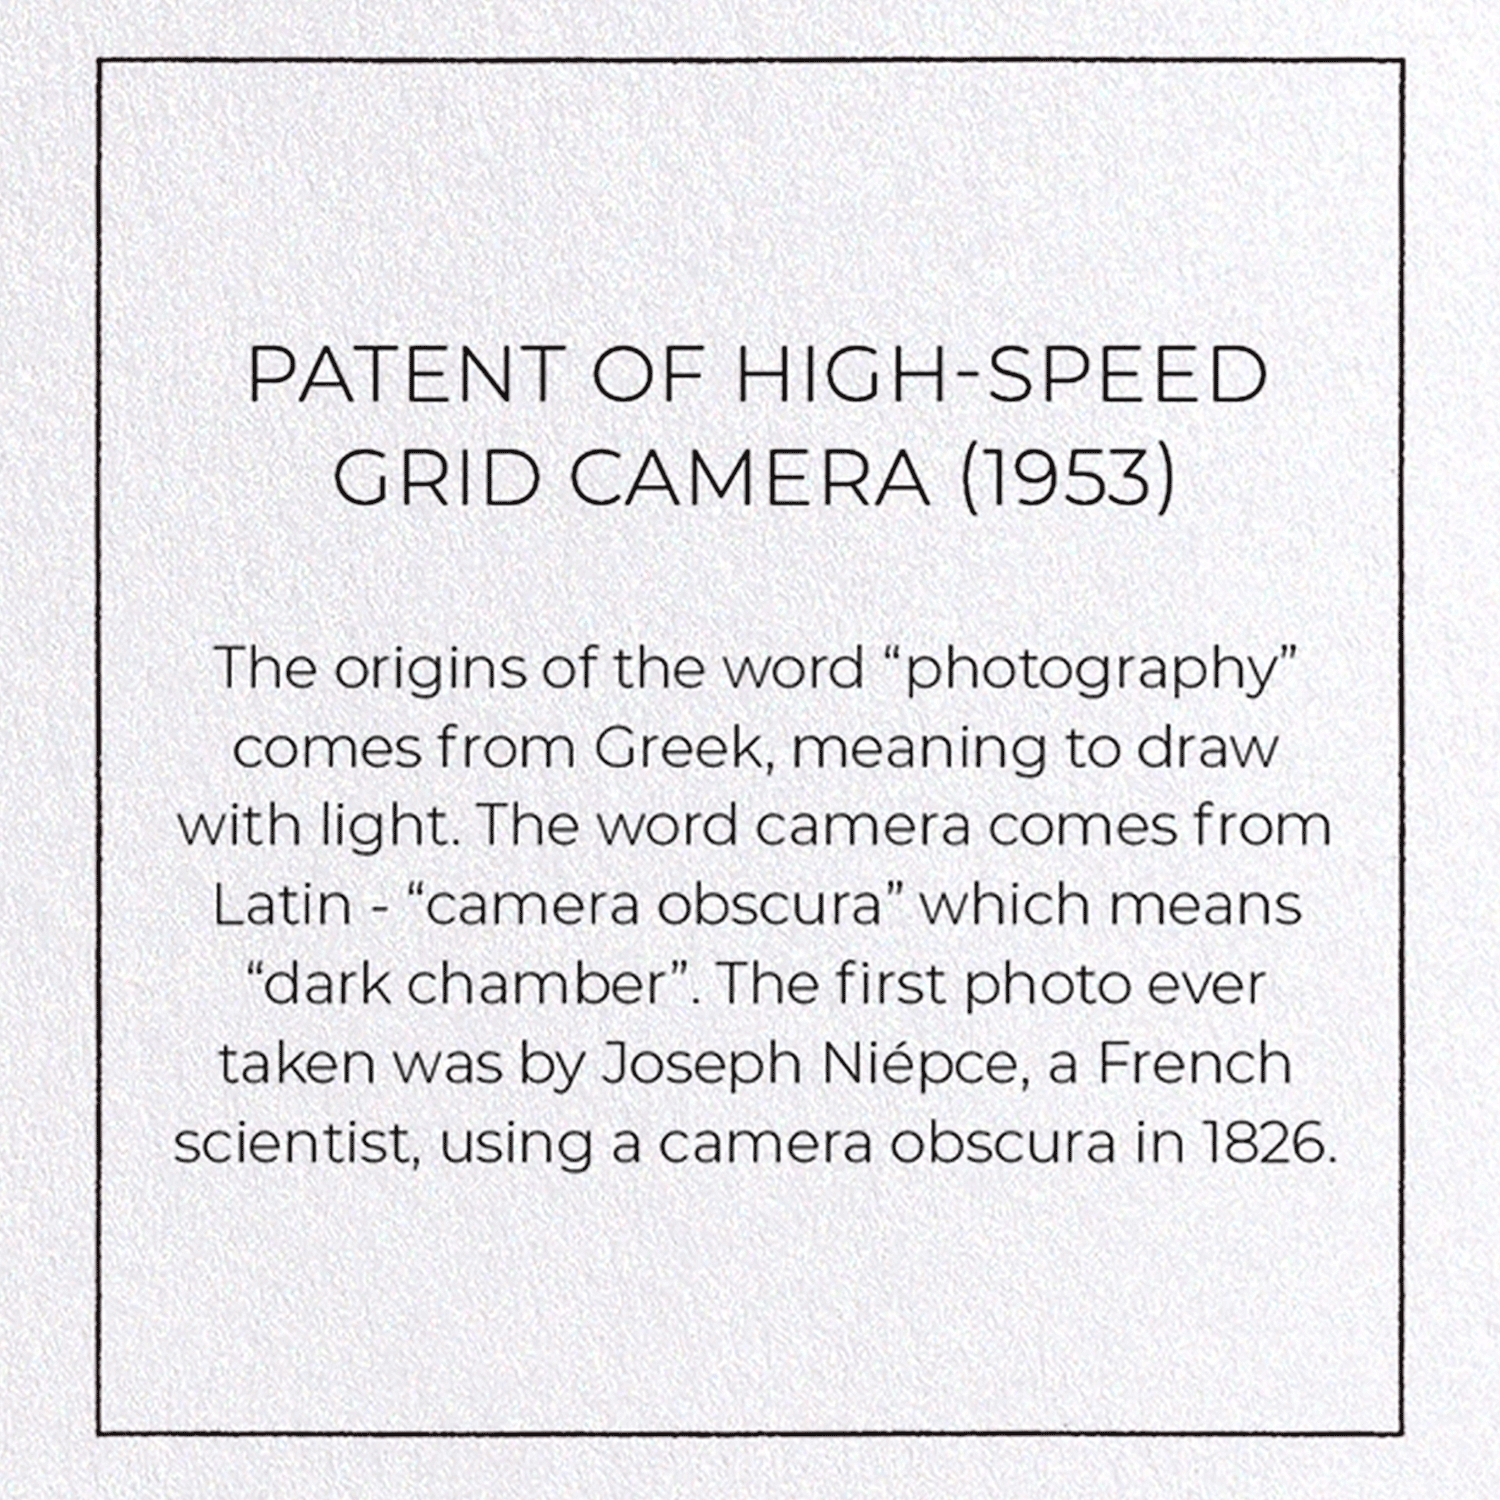 PATENT OF HIGH-SPEED GRID CAMERA (1953): 8xCards